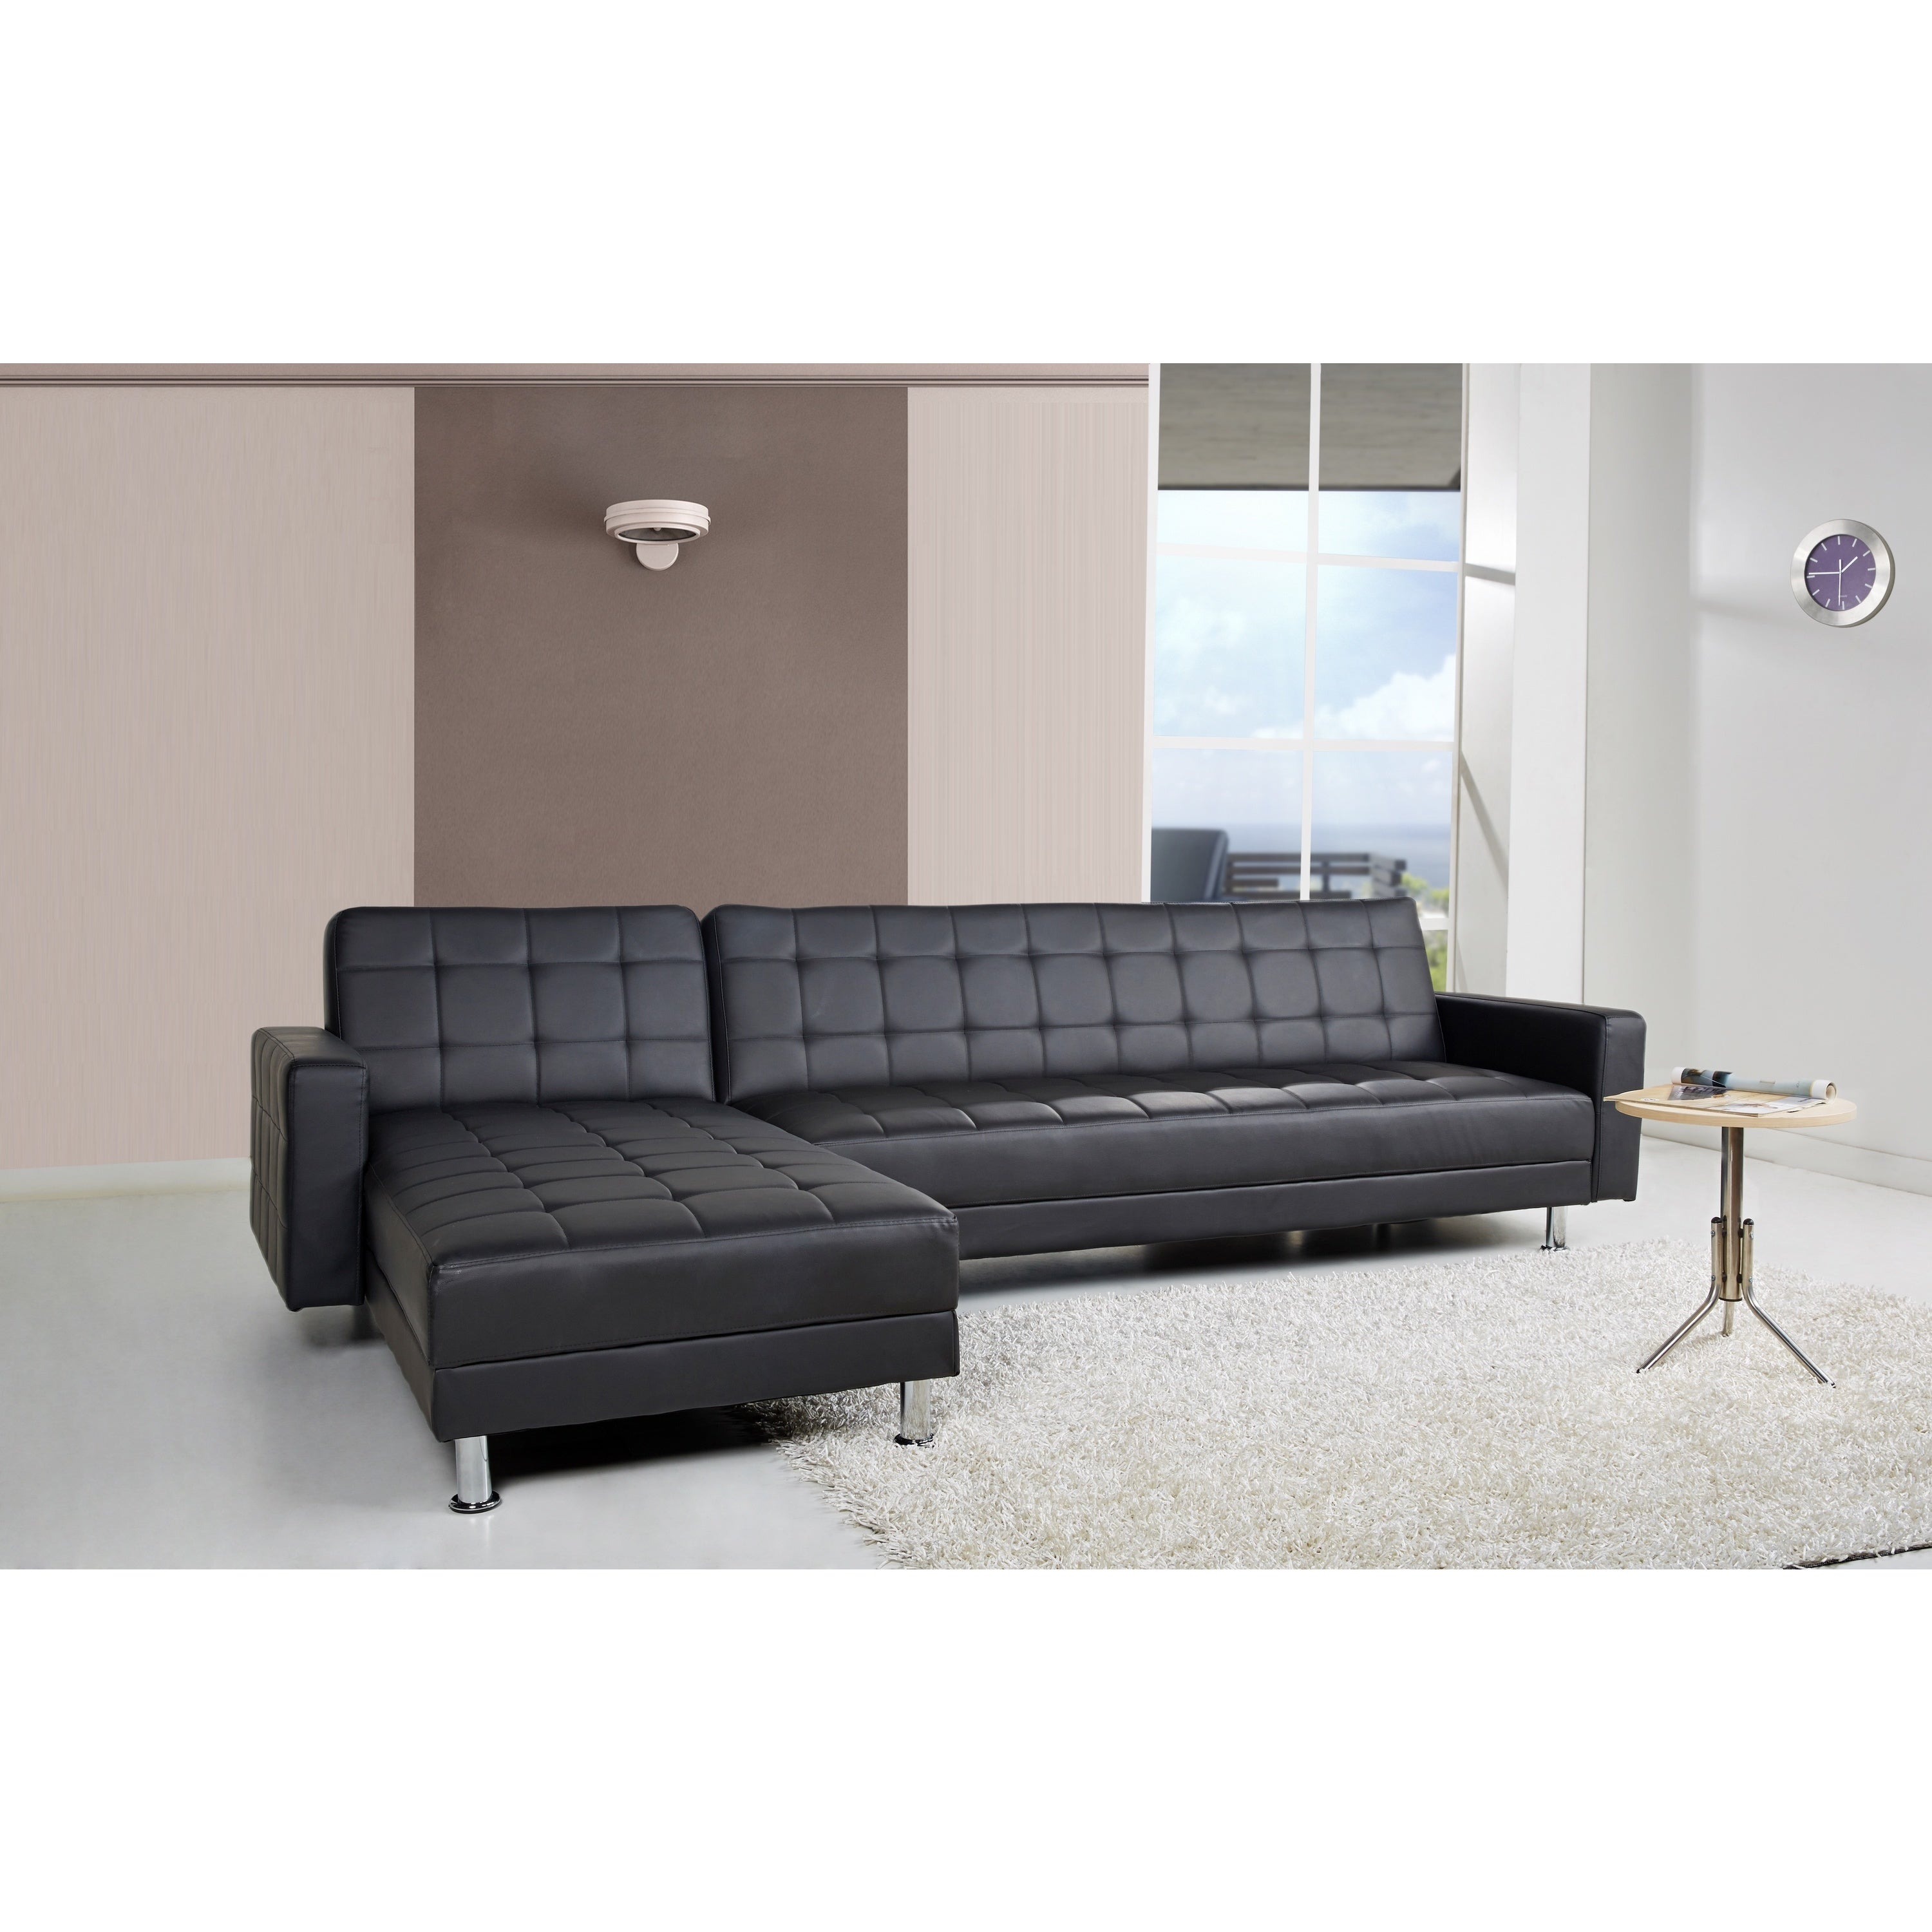 Fresh Convertible Sectional sofa Bed Unique